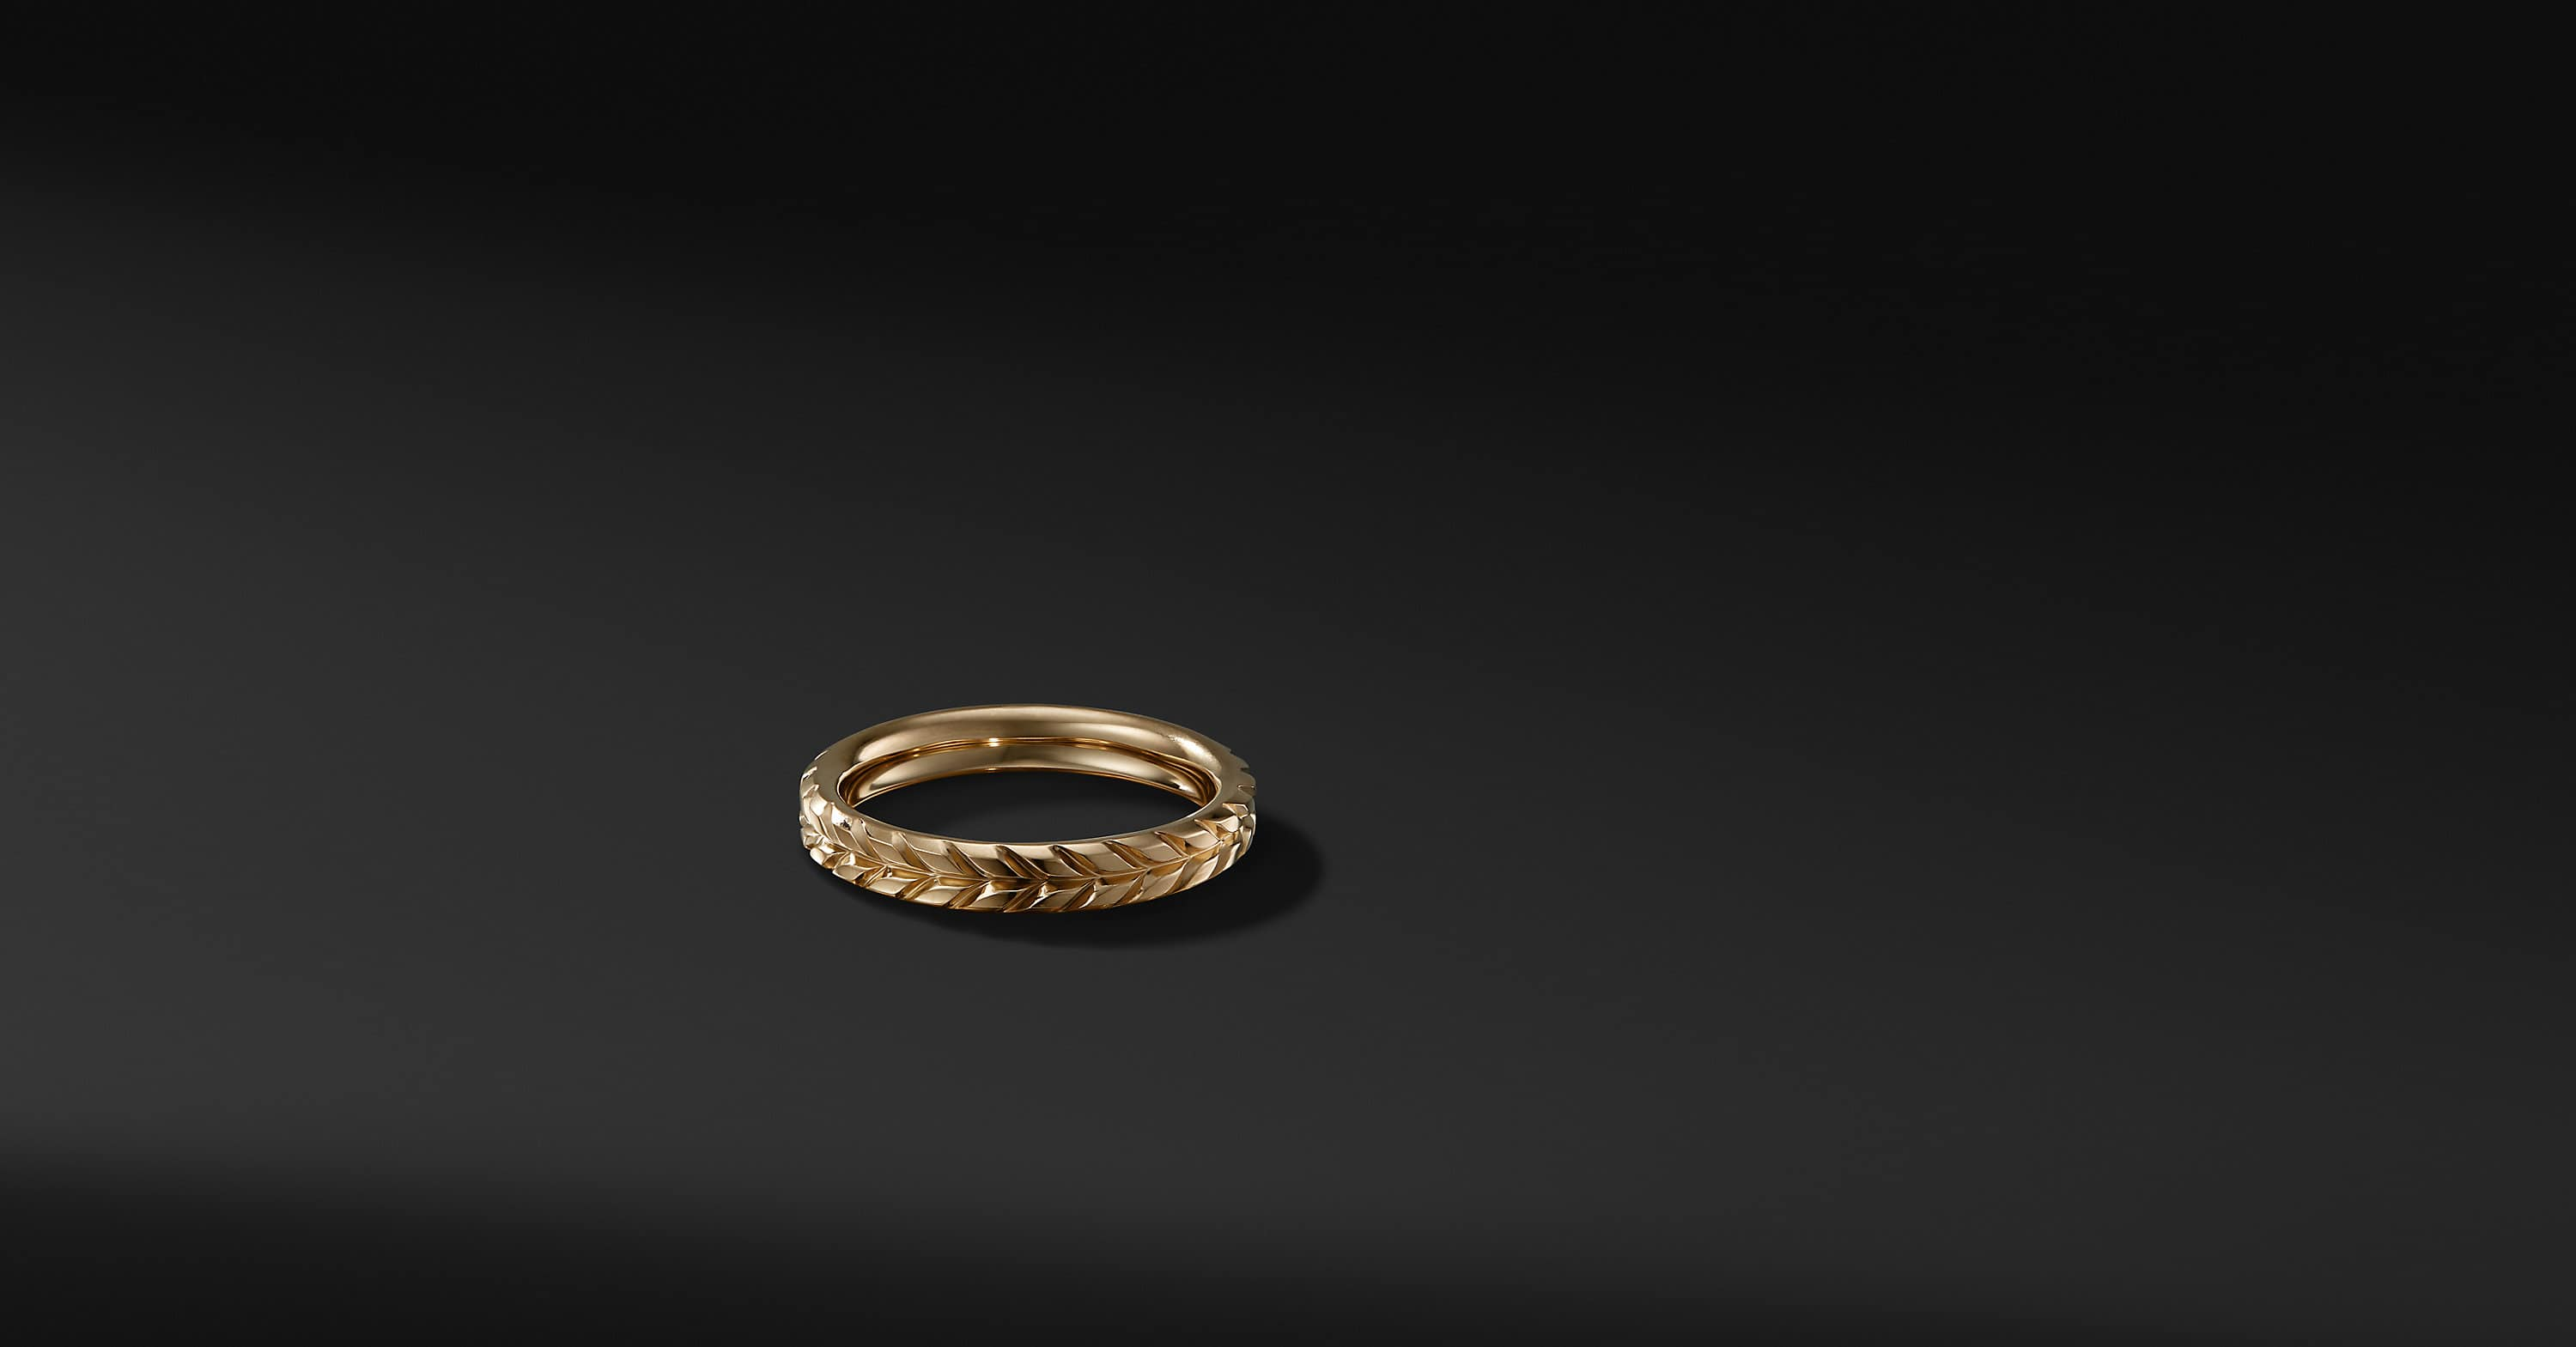 Chevron Band in 18K Gold, 4mm